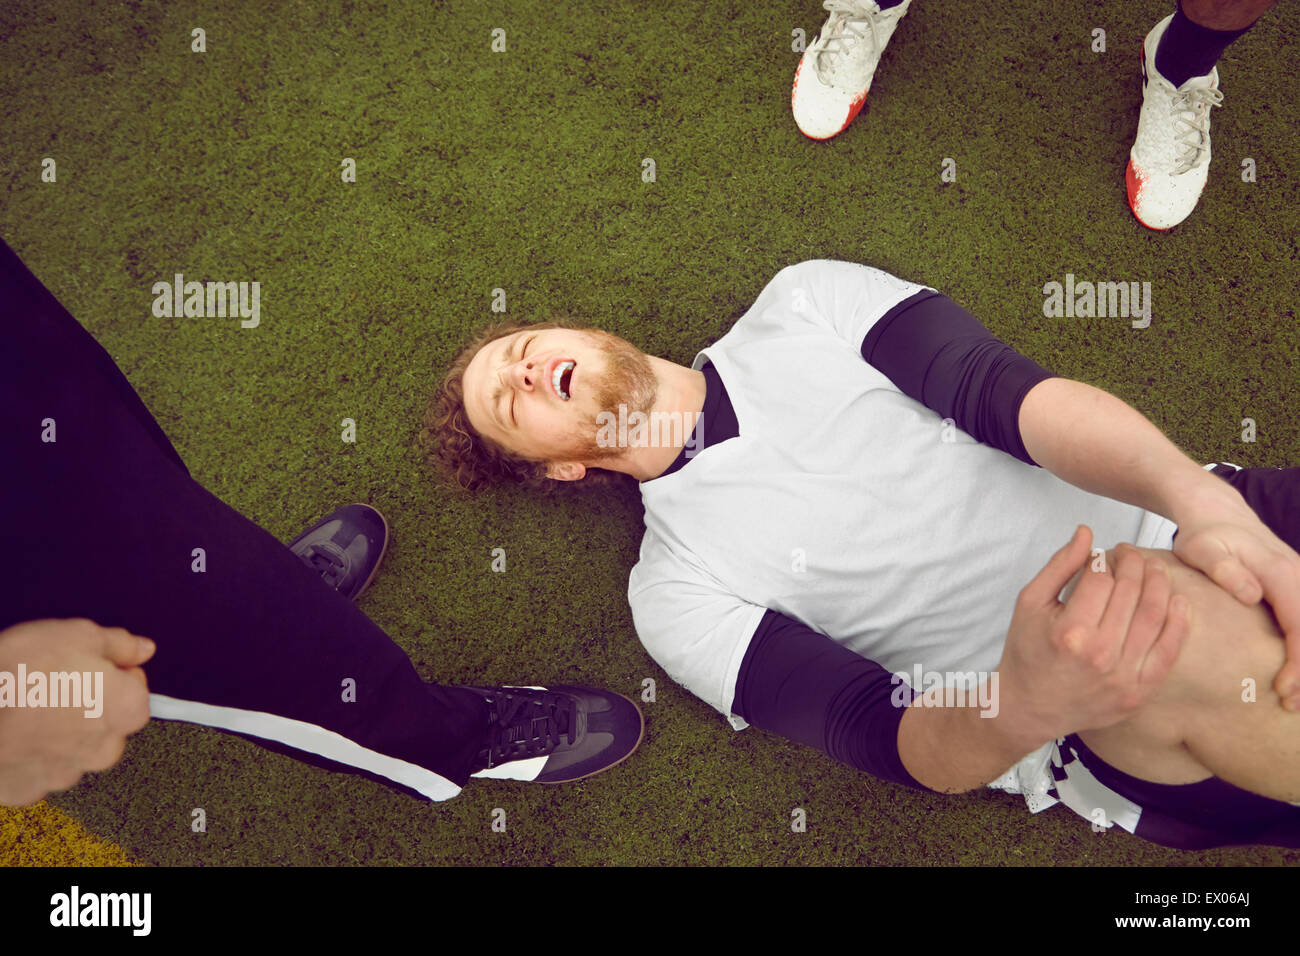 Injured male soccer player on soccer pitch - Stock Image